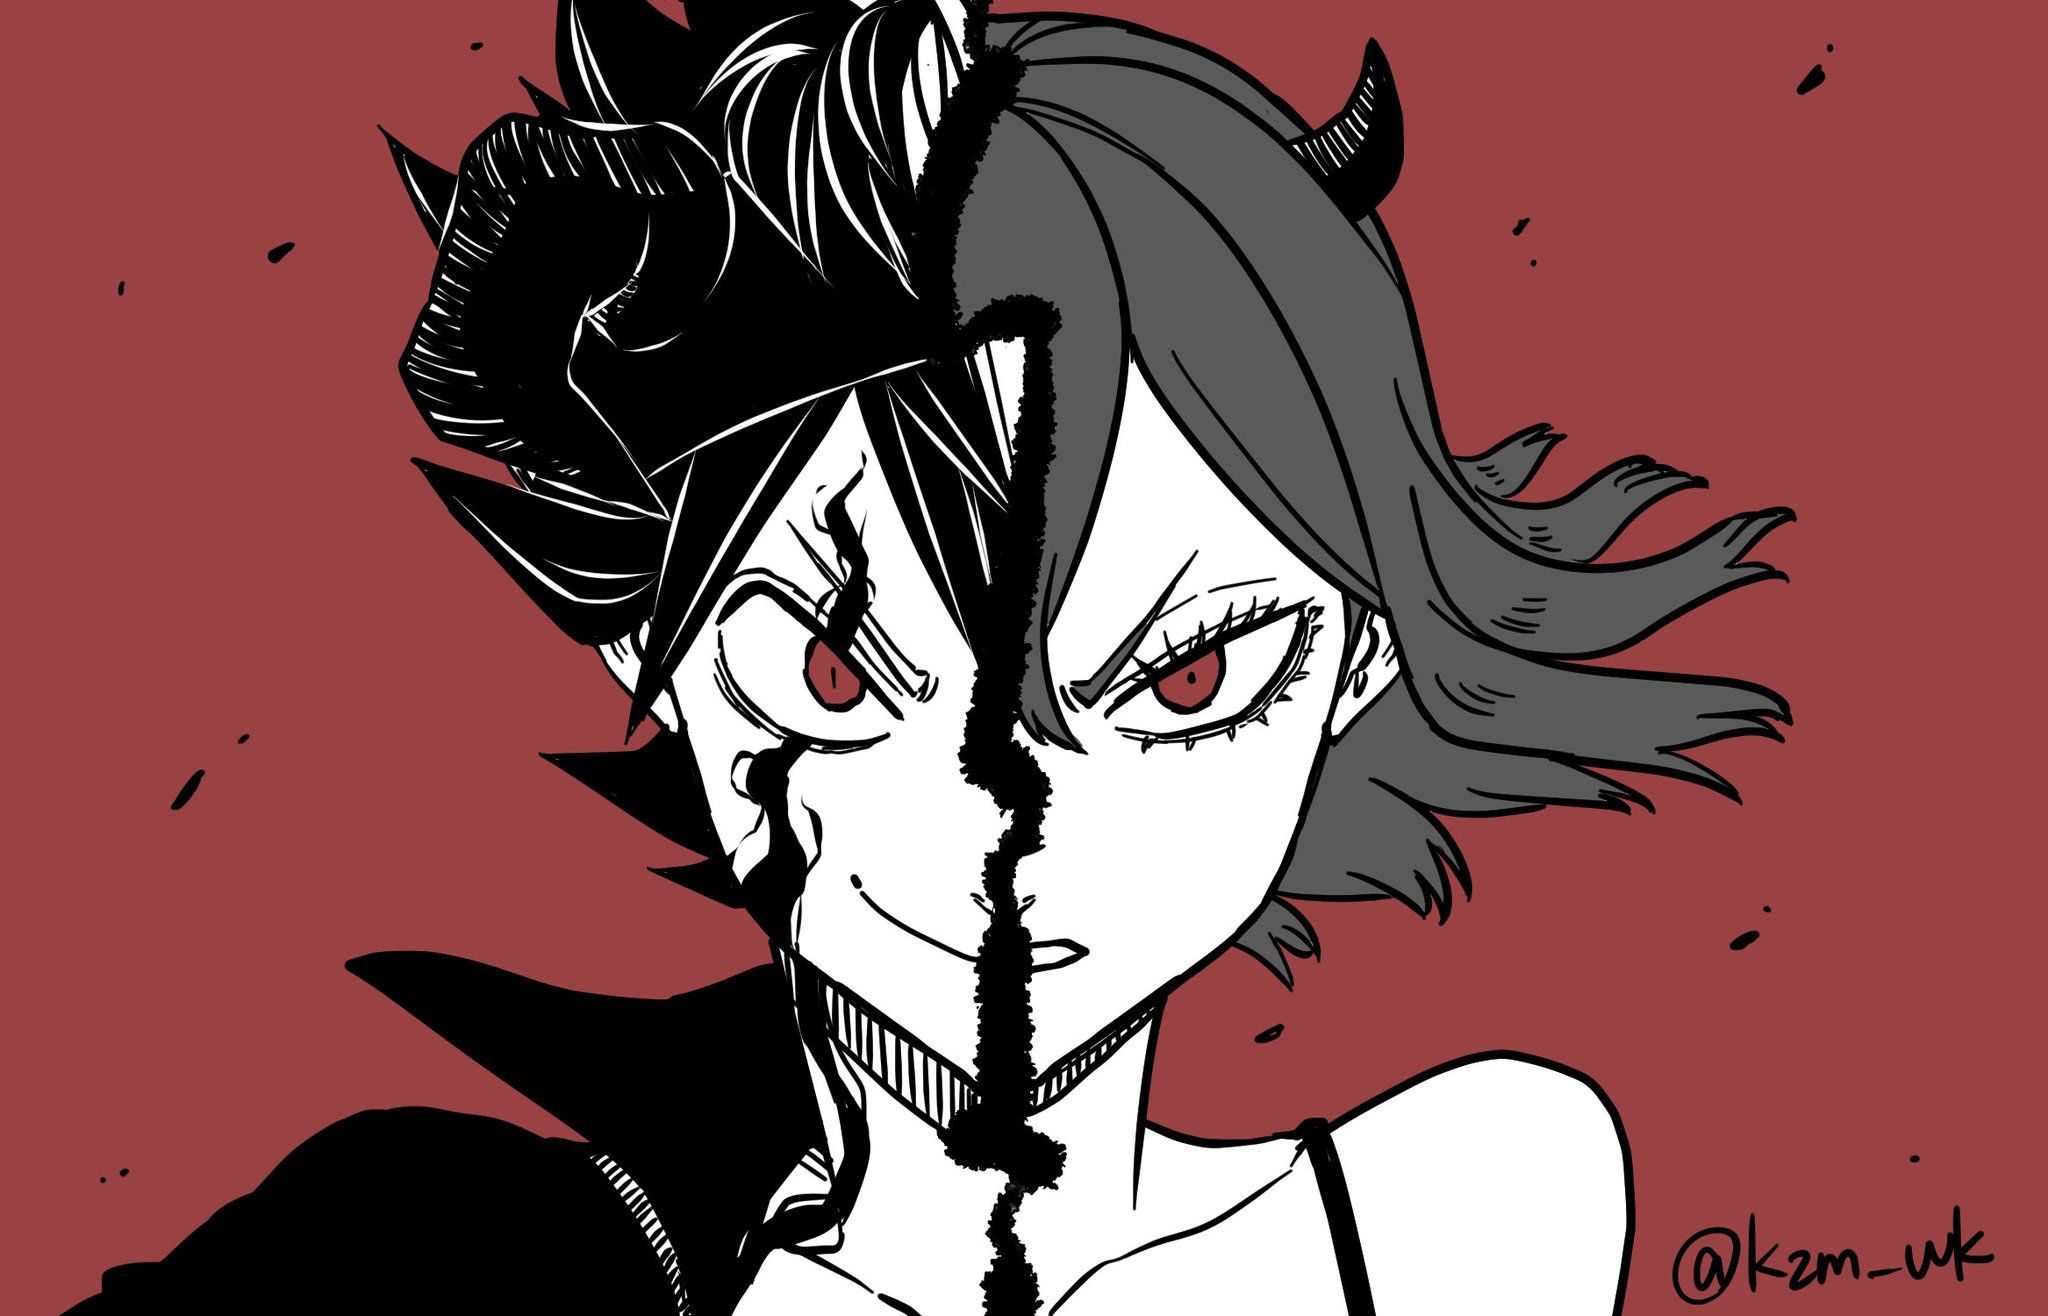 Pin by Endra Blade on faves animy in 2020 Black clover